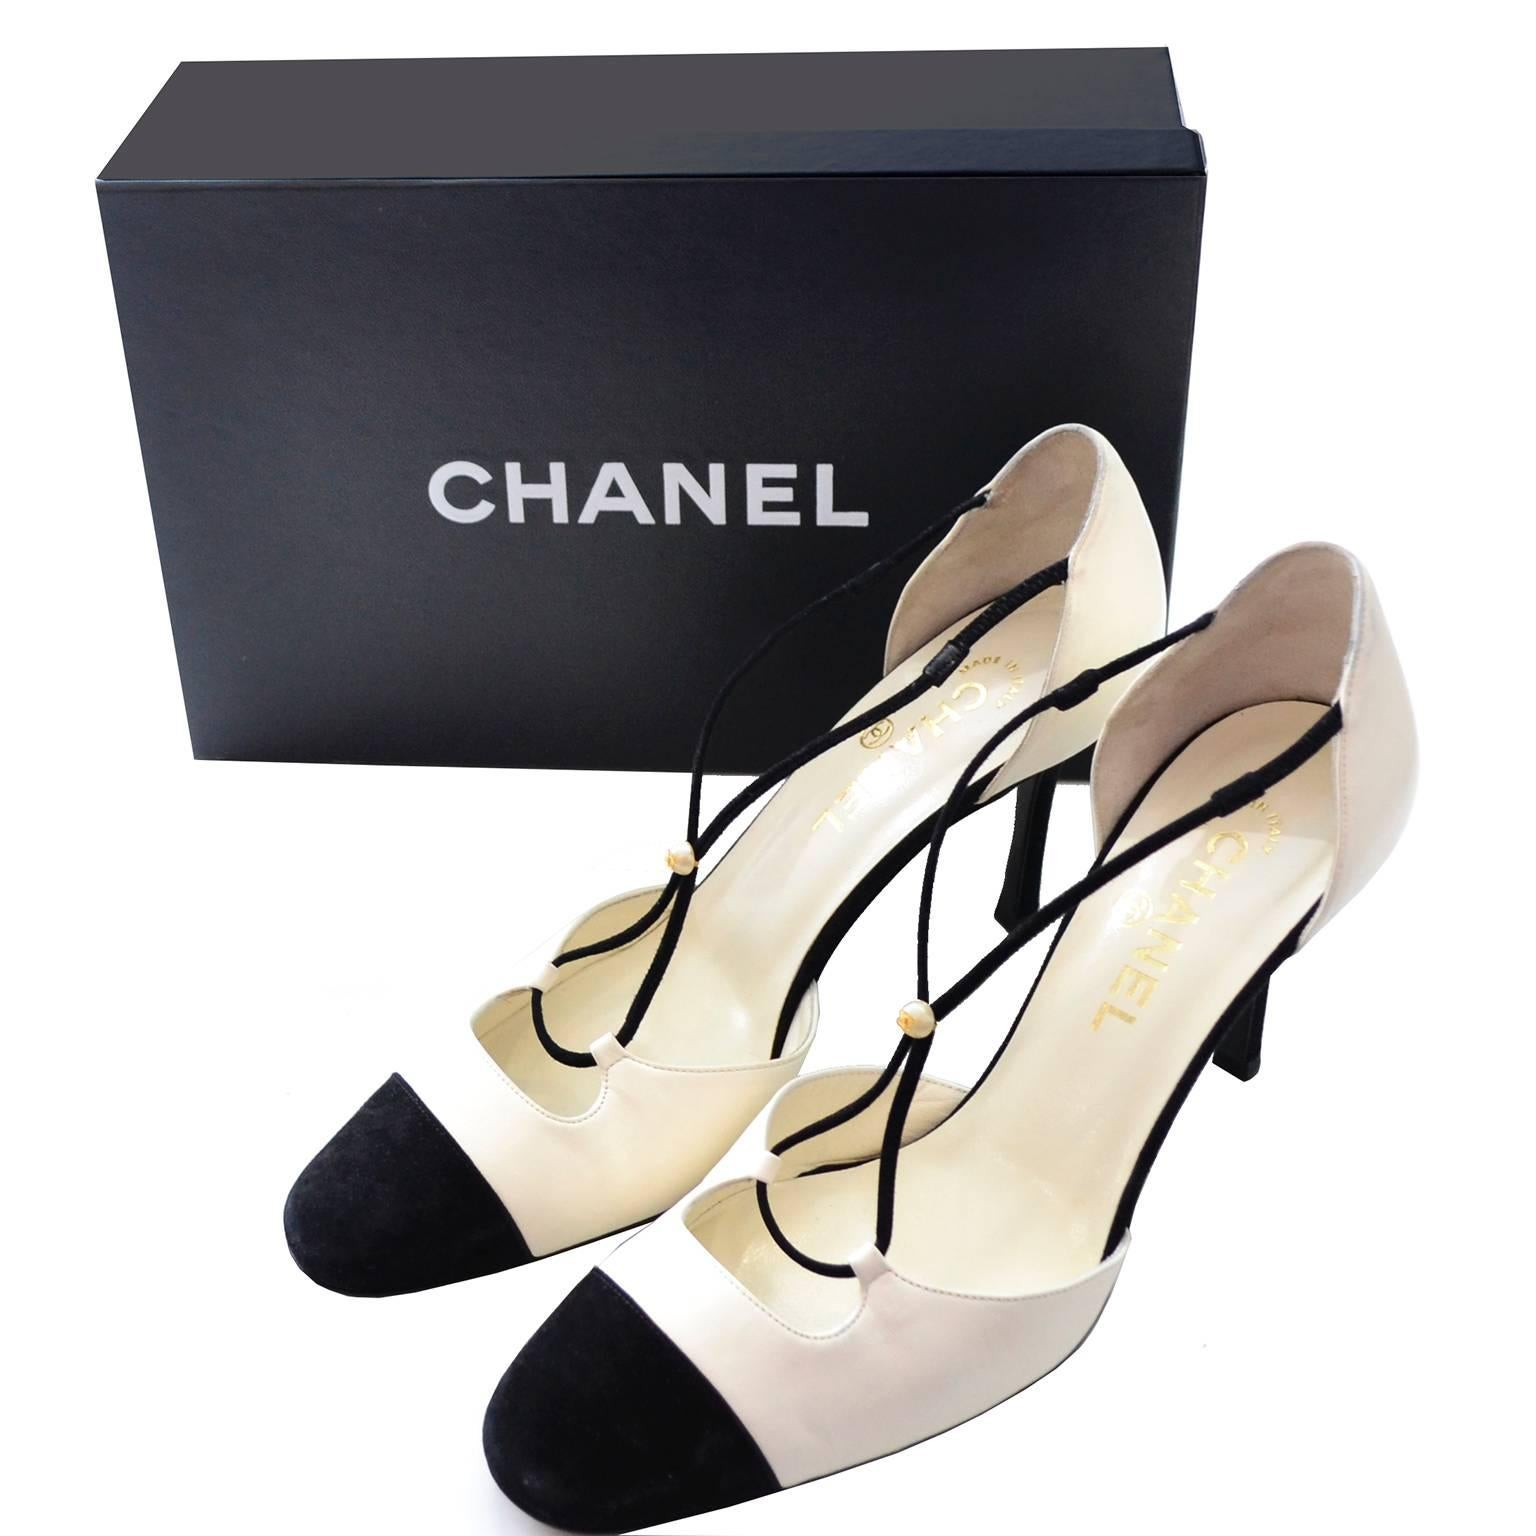 b24e7a37c86d Chanel Ivory Leather Black Suede Cross Strap Heels Shoes In Box 39.5 Cap  Toe For Sale at 1stdibs